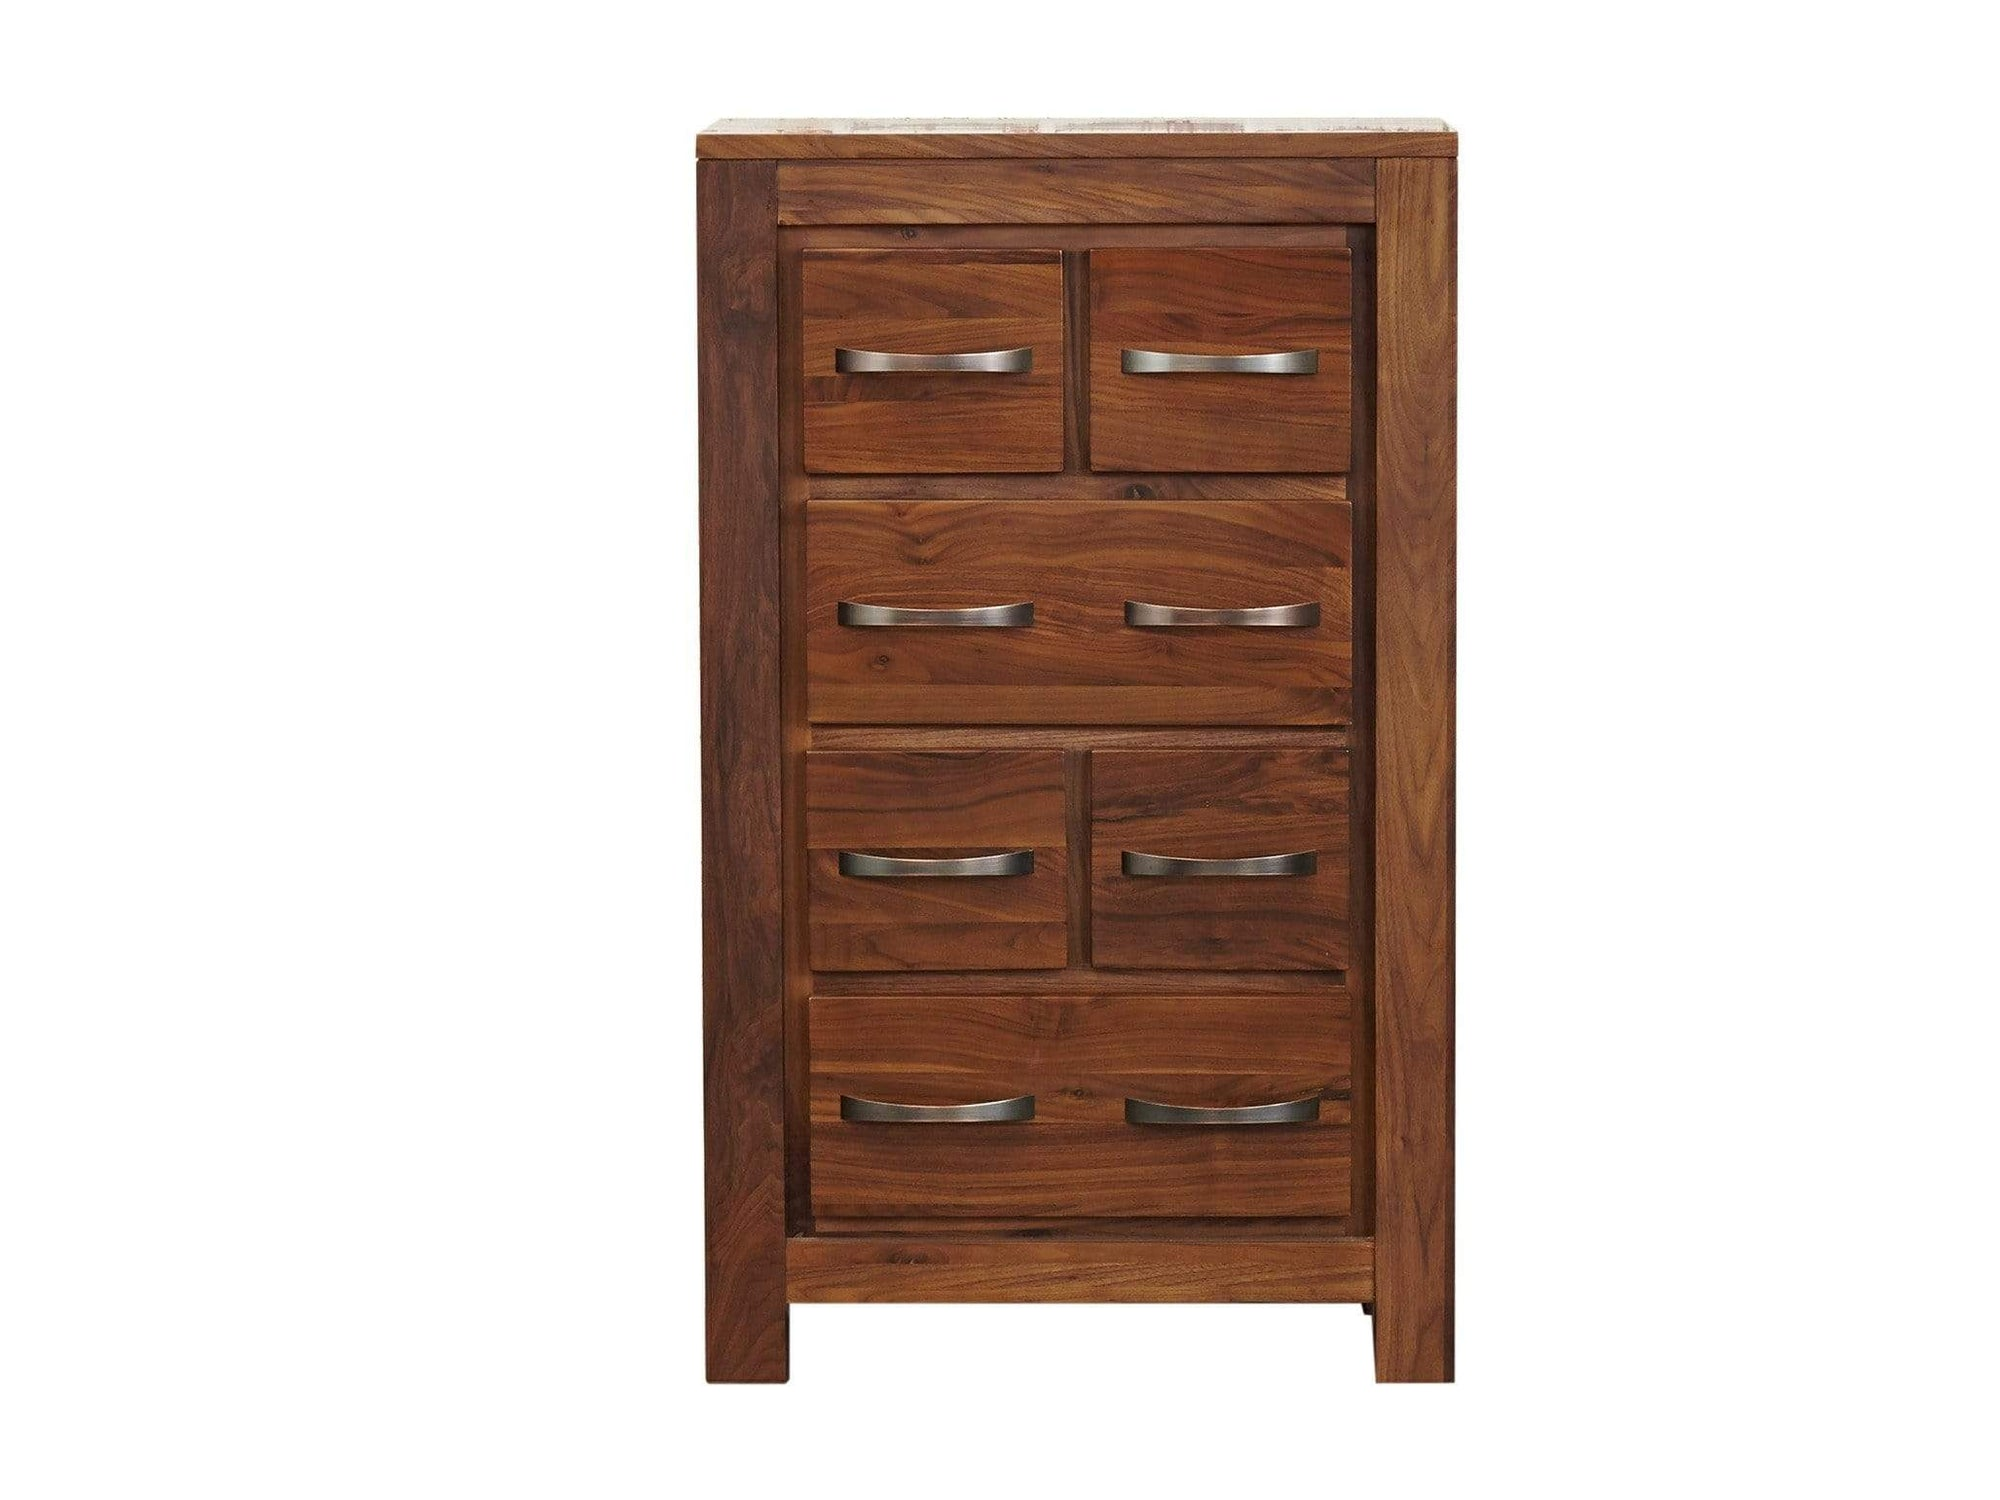 Chest of drawers for CD and DVD storage. Crafted from walnut wood.